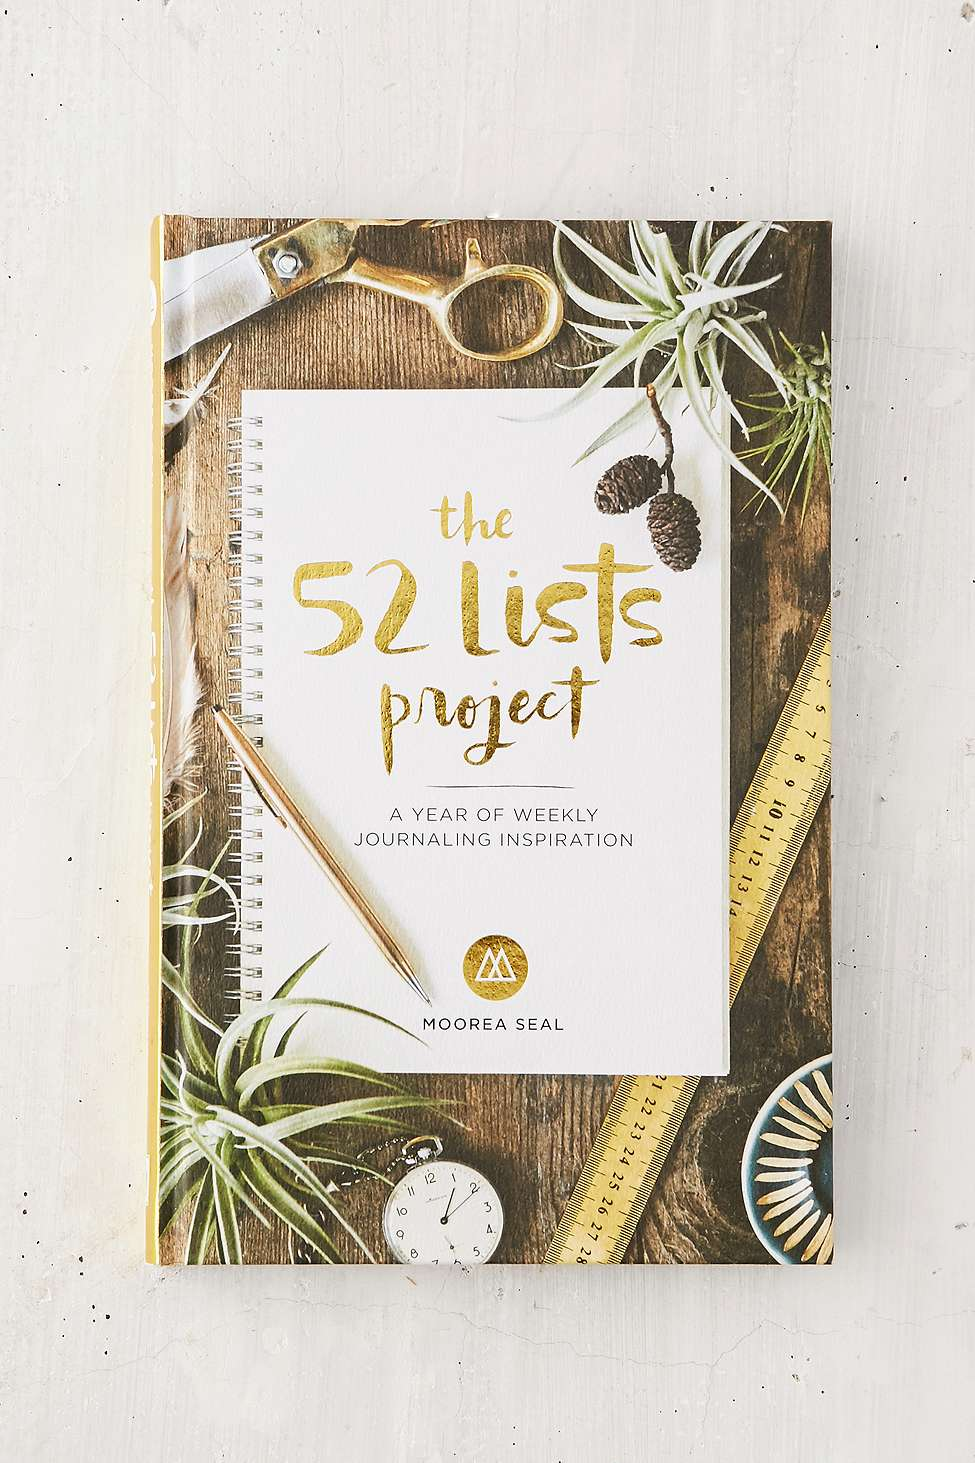 Slide View: 1: The 52 Lists Project: A Year of Weekly Journaling Inspiration Book